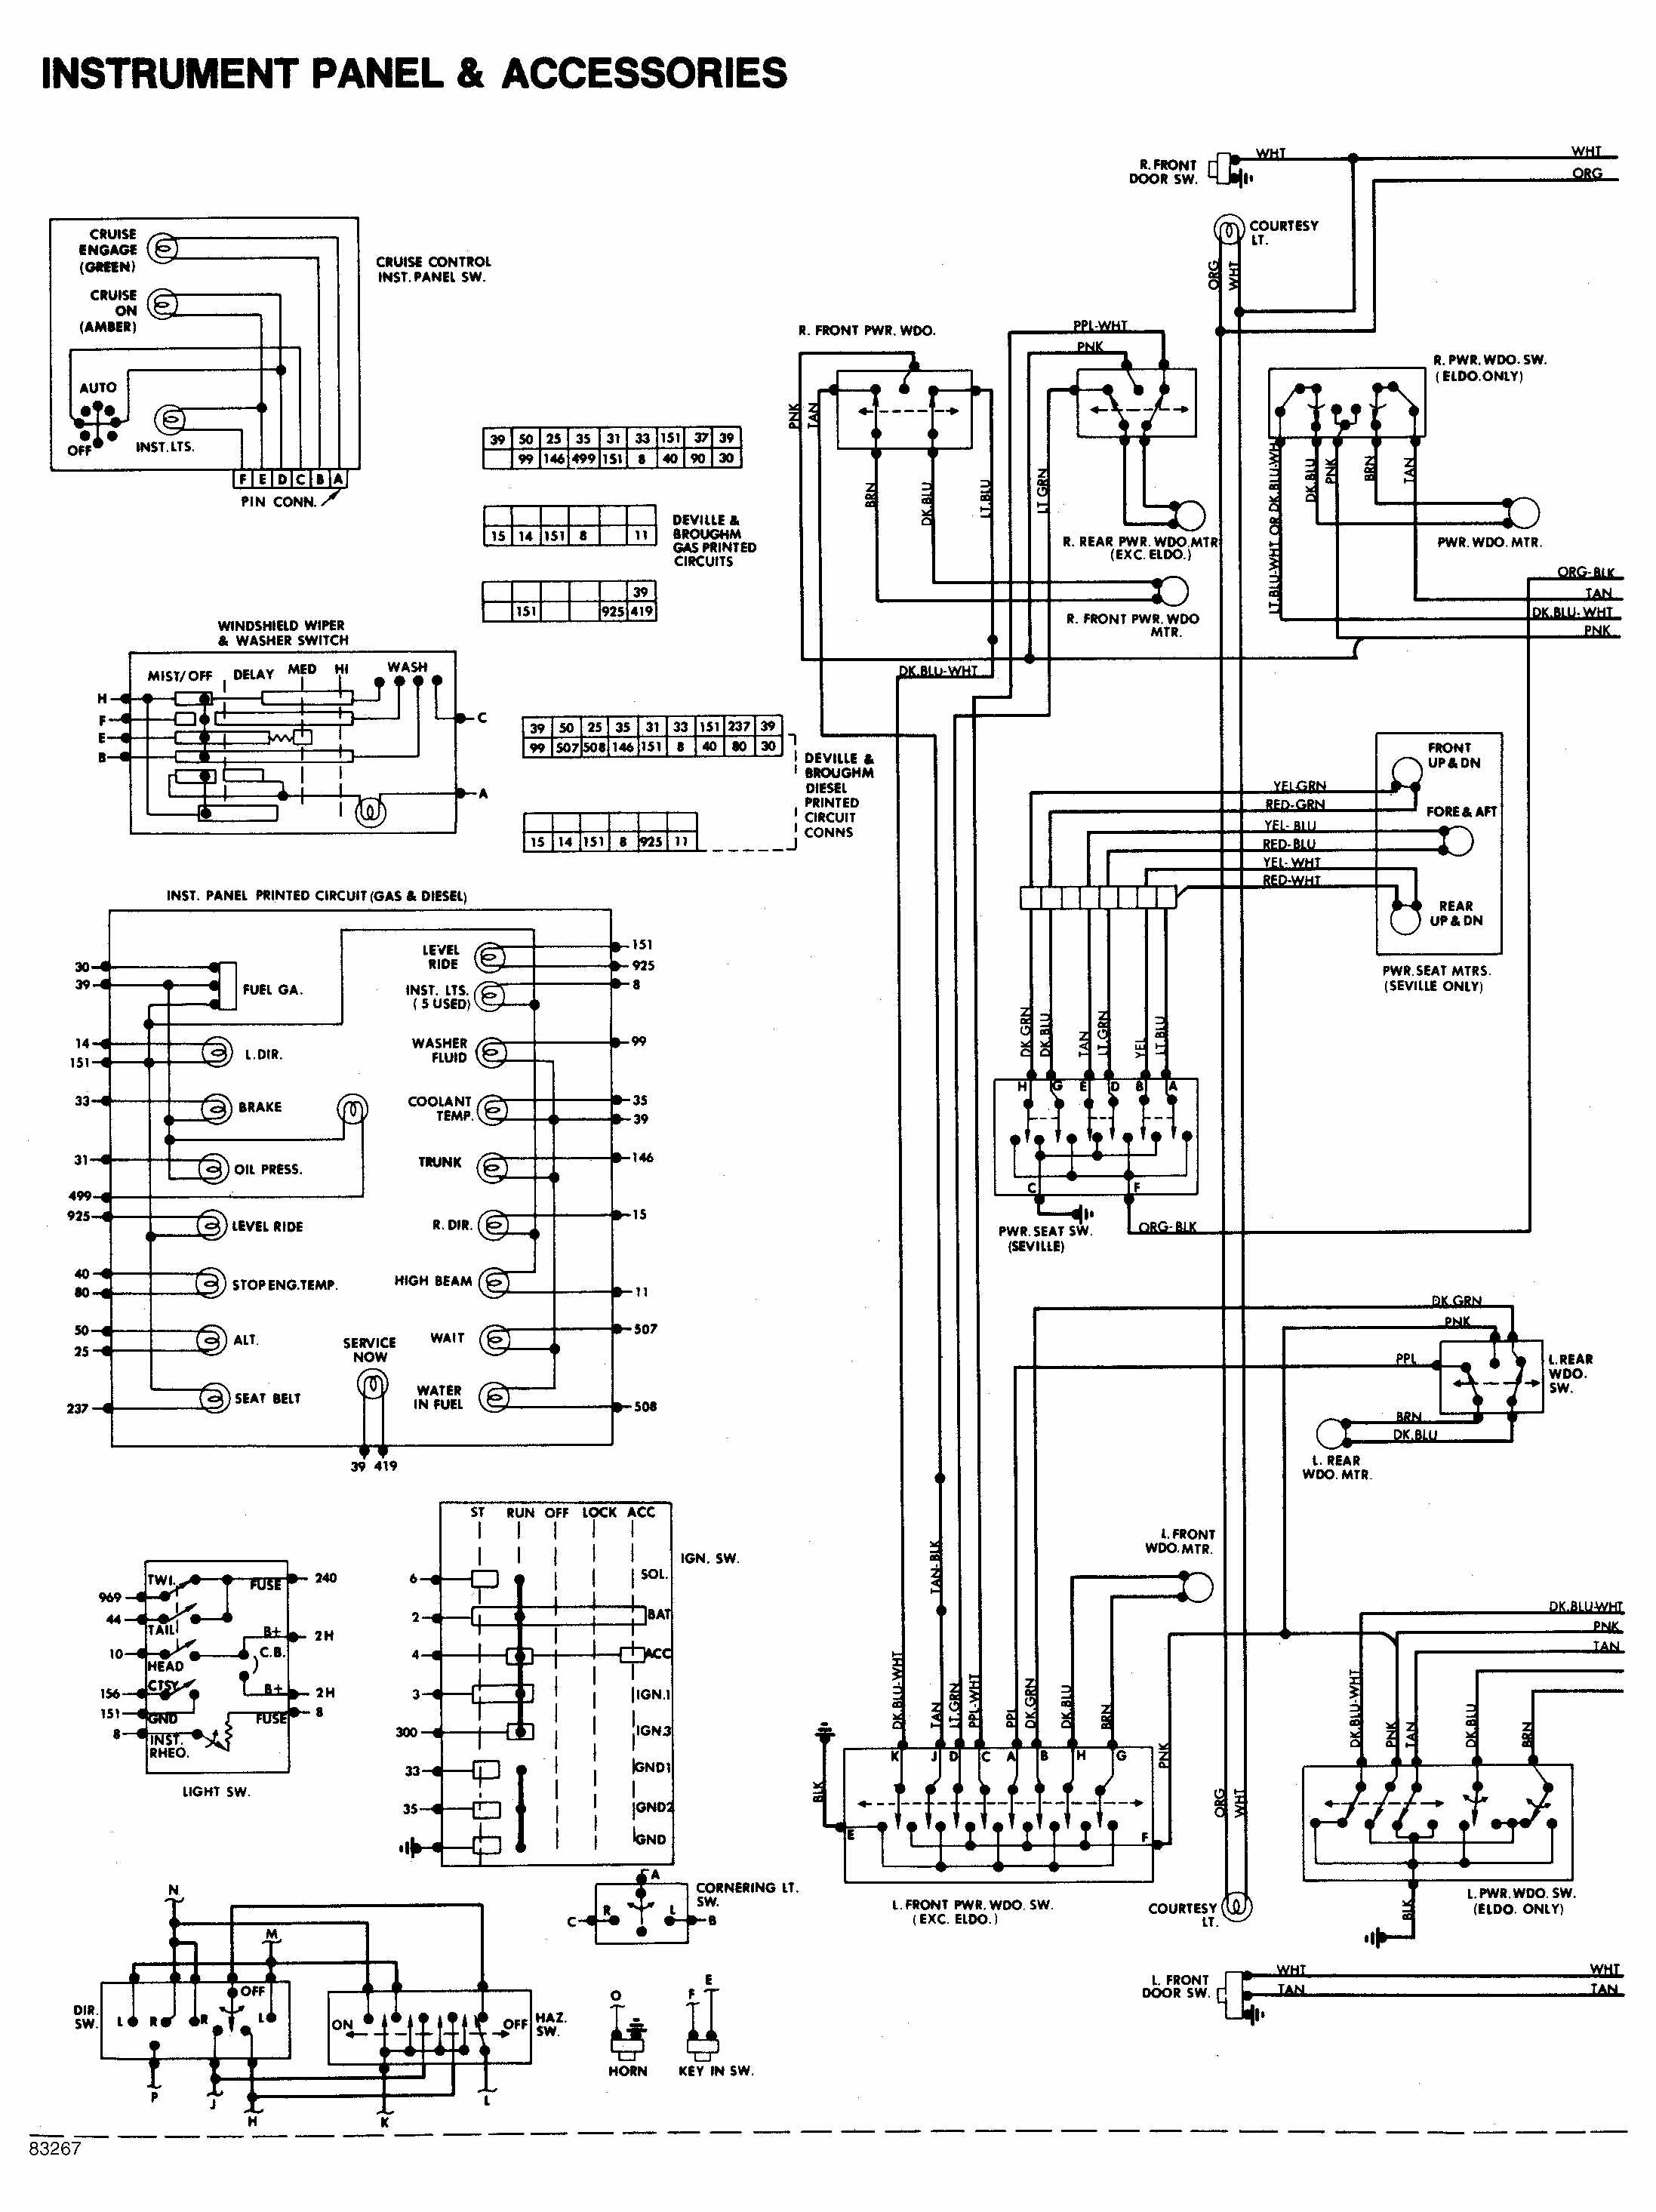 instrument panel and accessories wiring diagram of 1984 cadillac deville cadillac wiring harness ram truck wiring harness \u2022 wiring diagrams  at bayanpartner.co